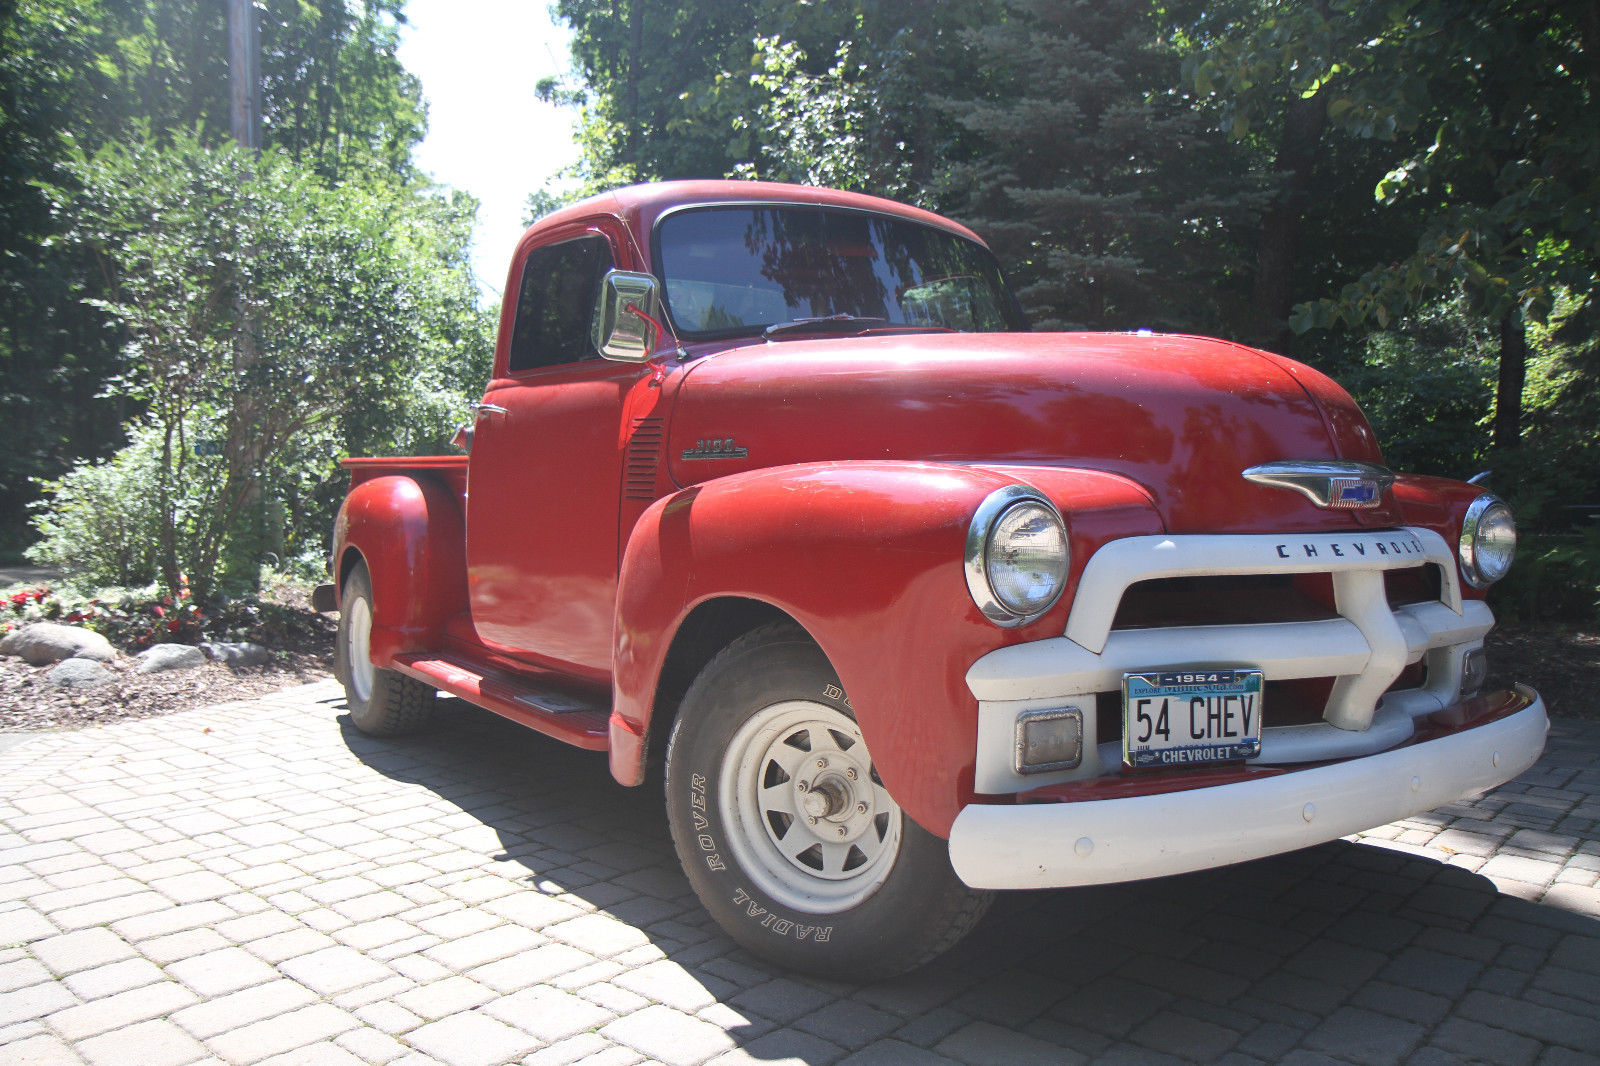 restored 1954 chevrolet pickups custom truck for sale. Black Bedroom Furniture Sets. Home Design Ideas